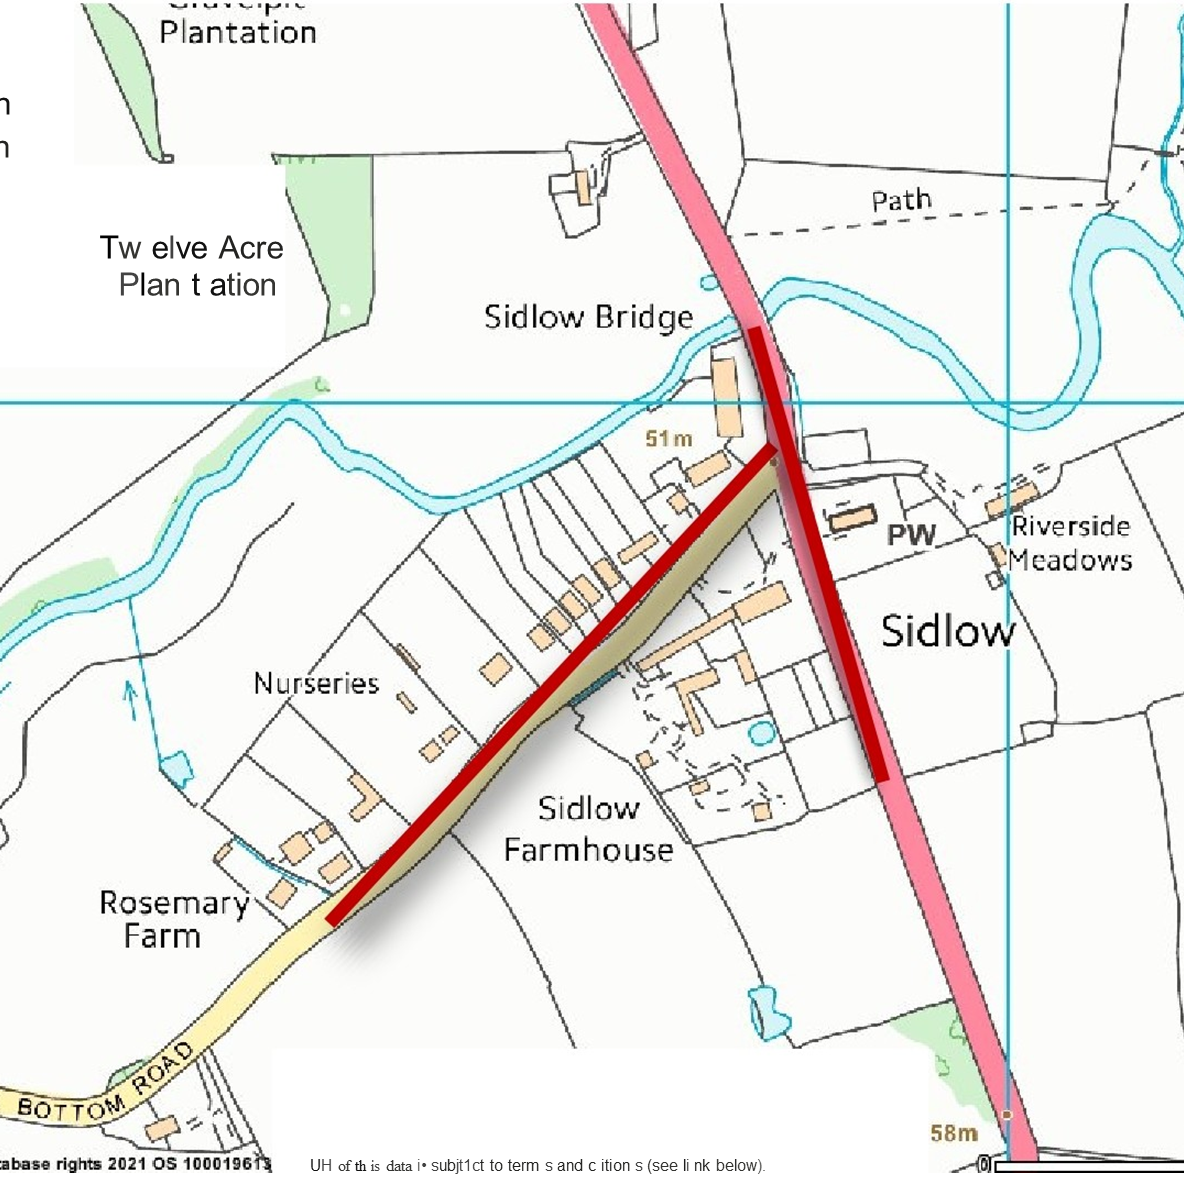 An image of a map with a highlighted section of the A217, showing where roadworks will be taking place.